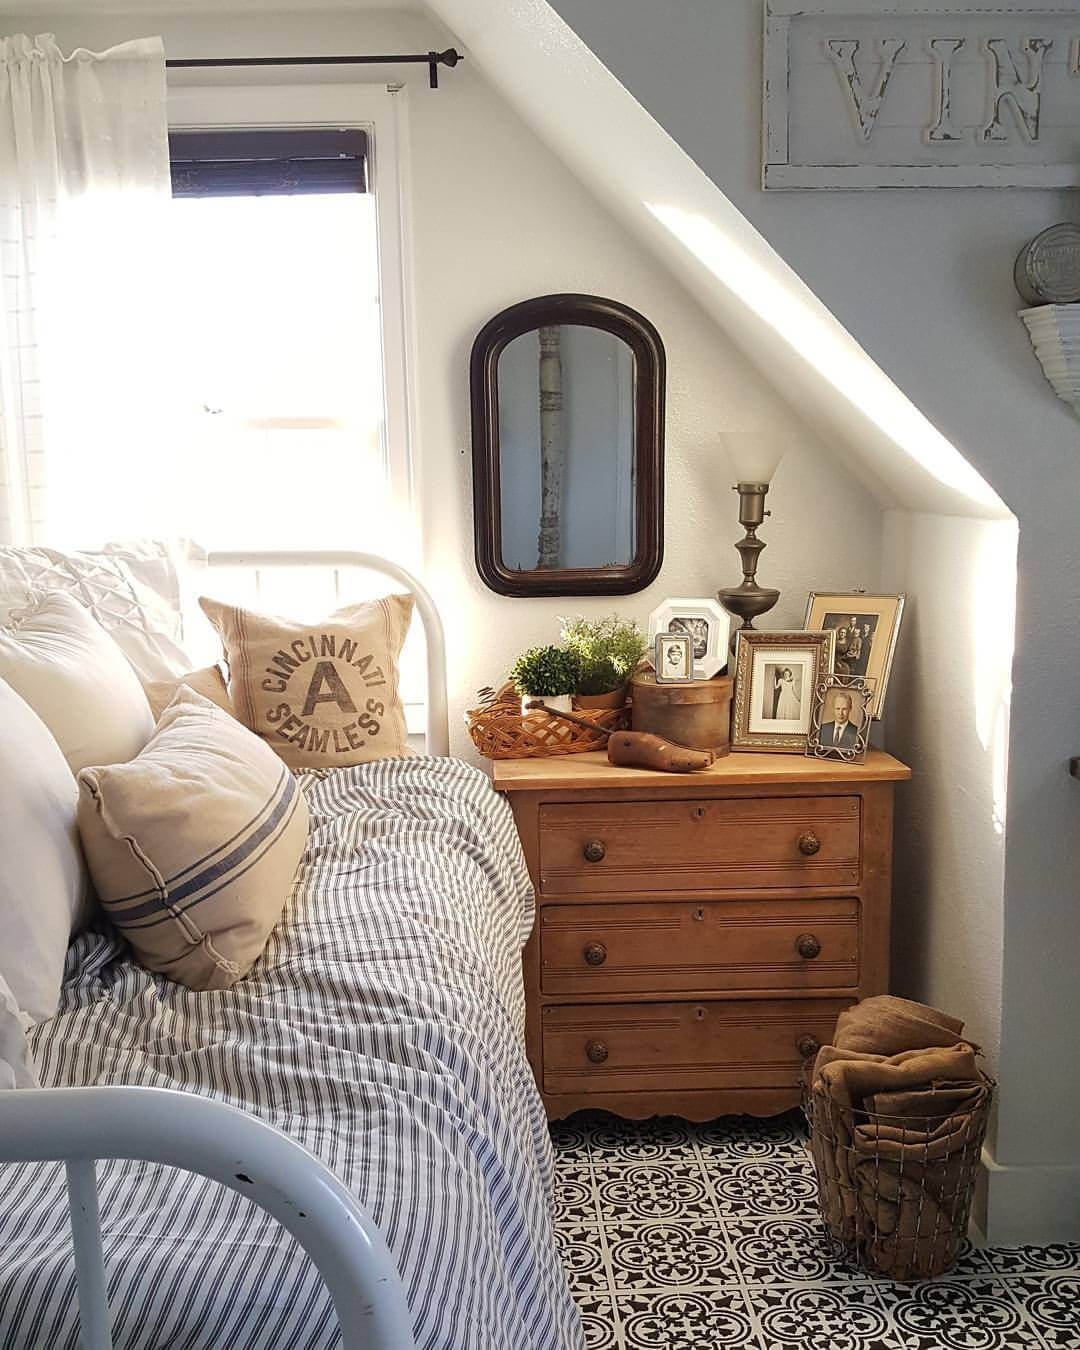 37 Best Small Bedroom Ideas and Designs for 2017 on Comfy Bedroom Ideas  id=60655